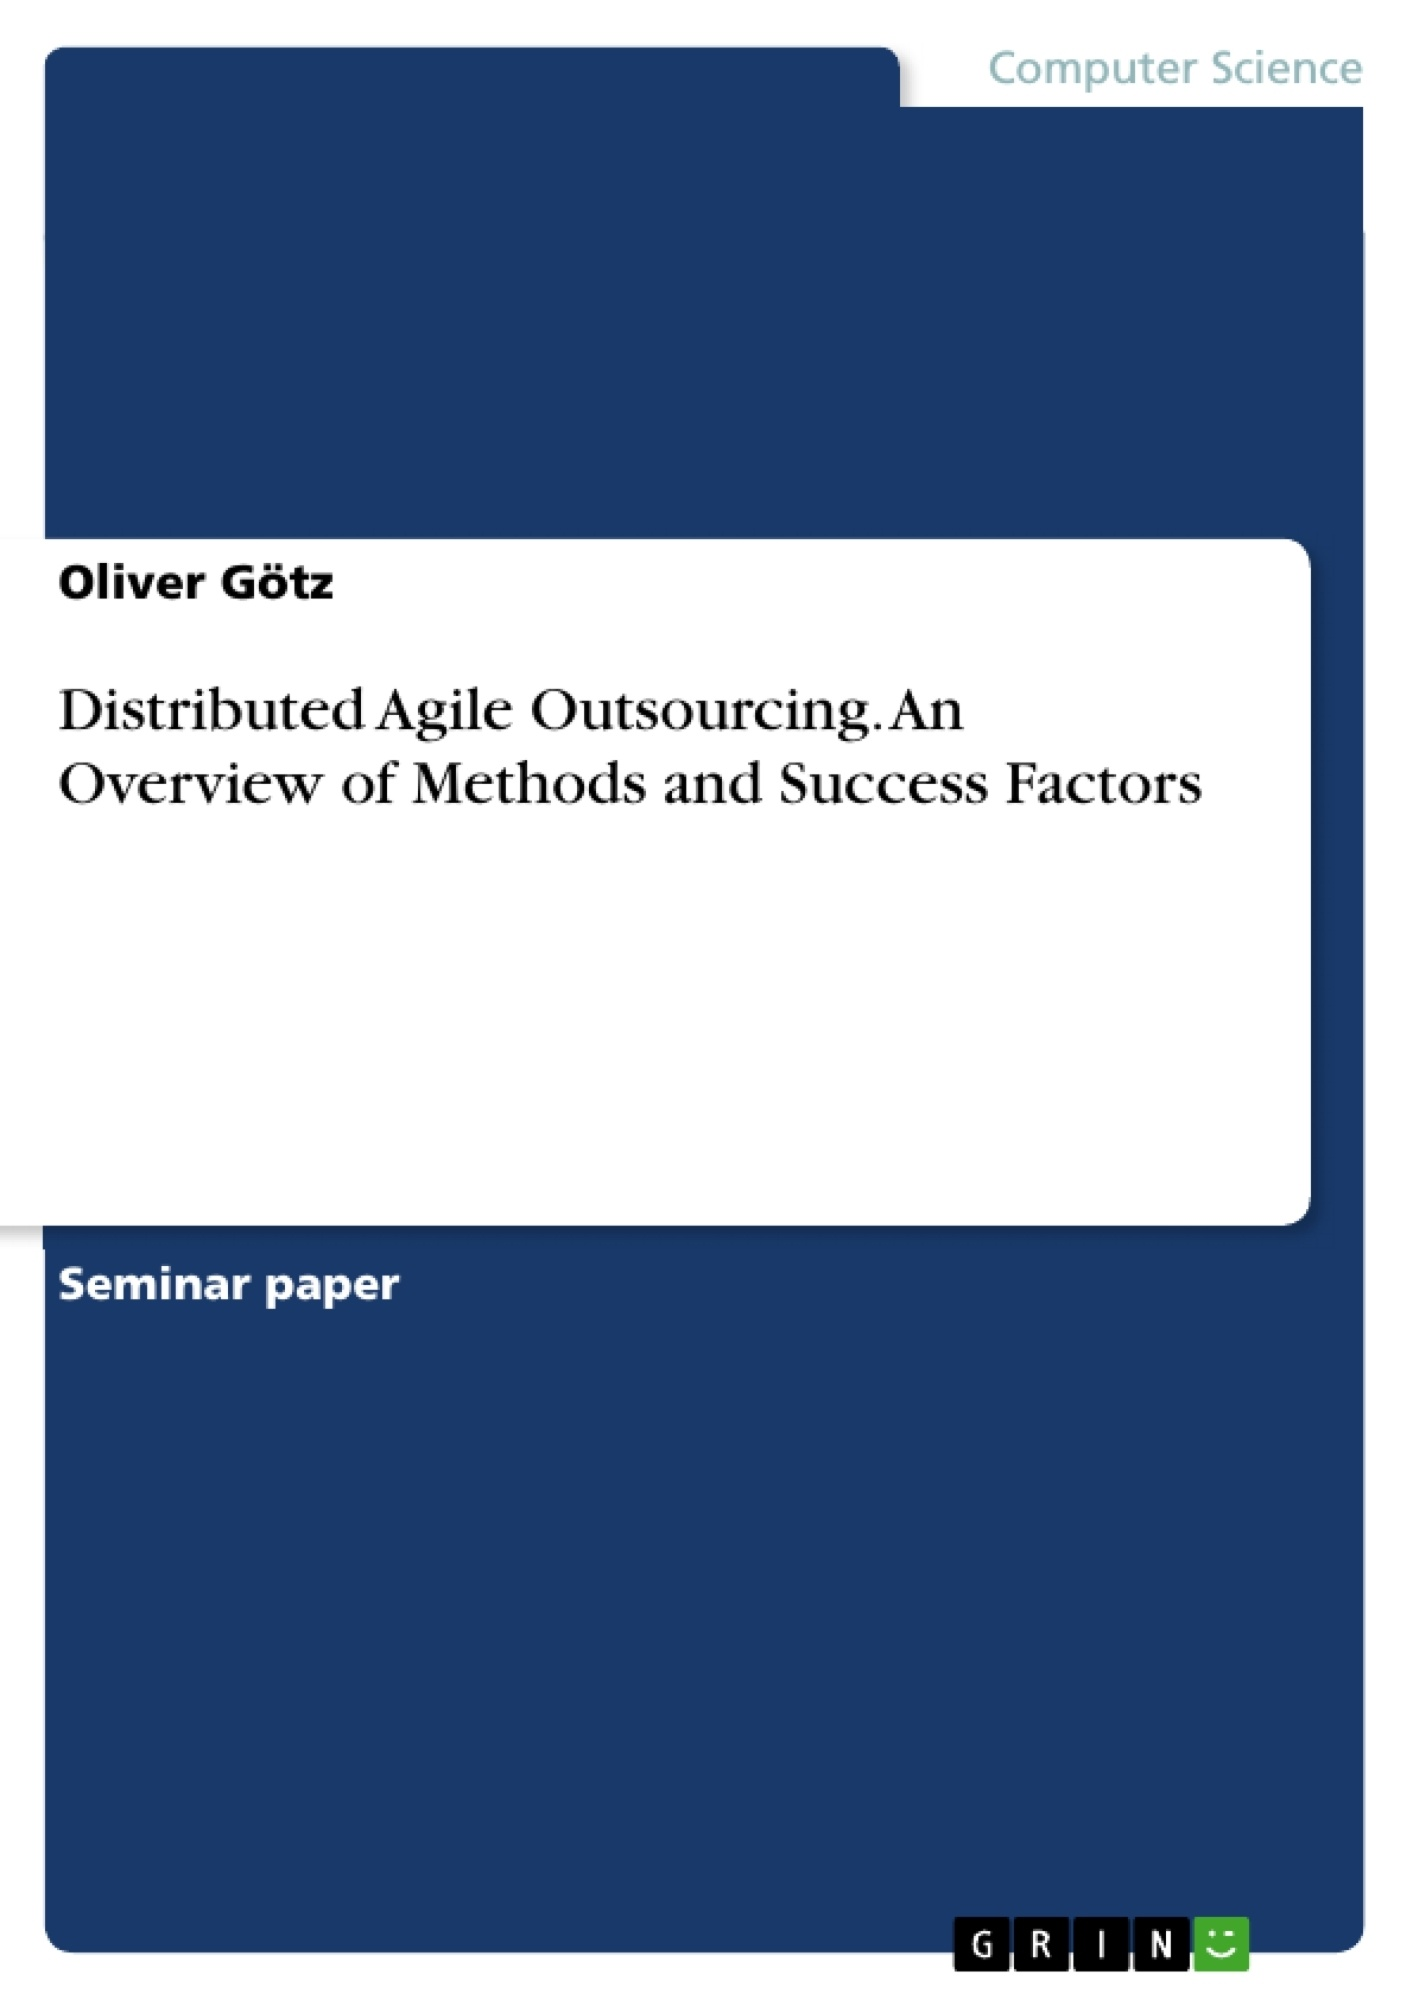 Title: Distributed Agile Outsourcing. An Overview of Methods and Success Factors